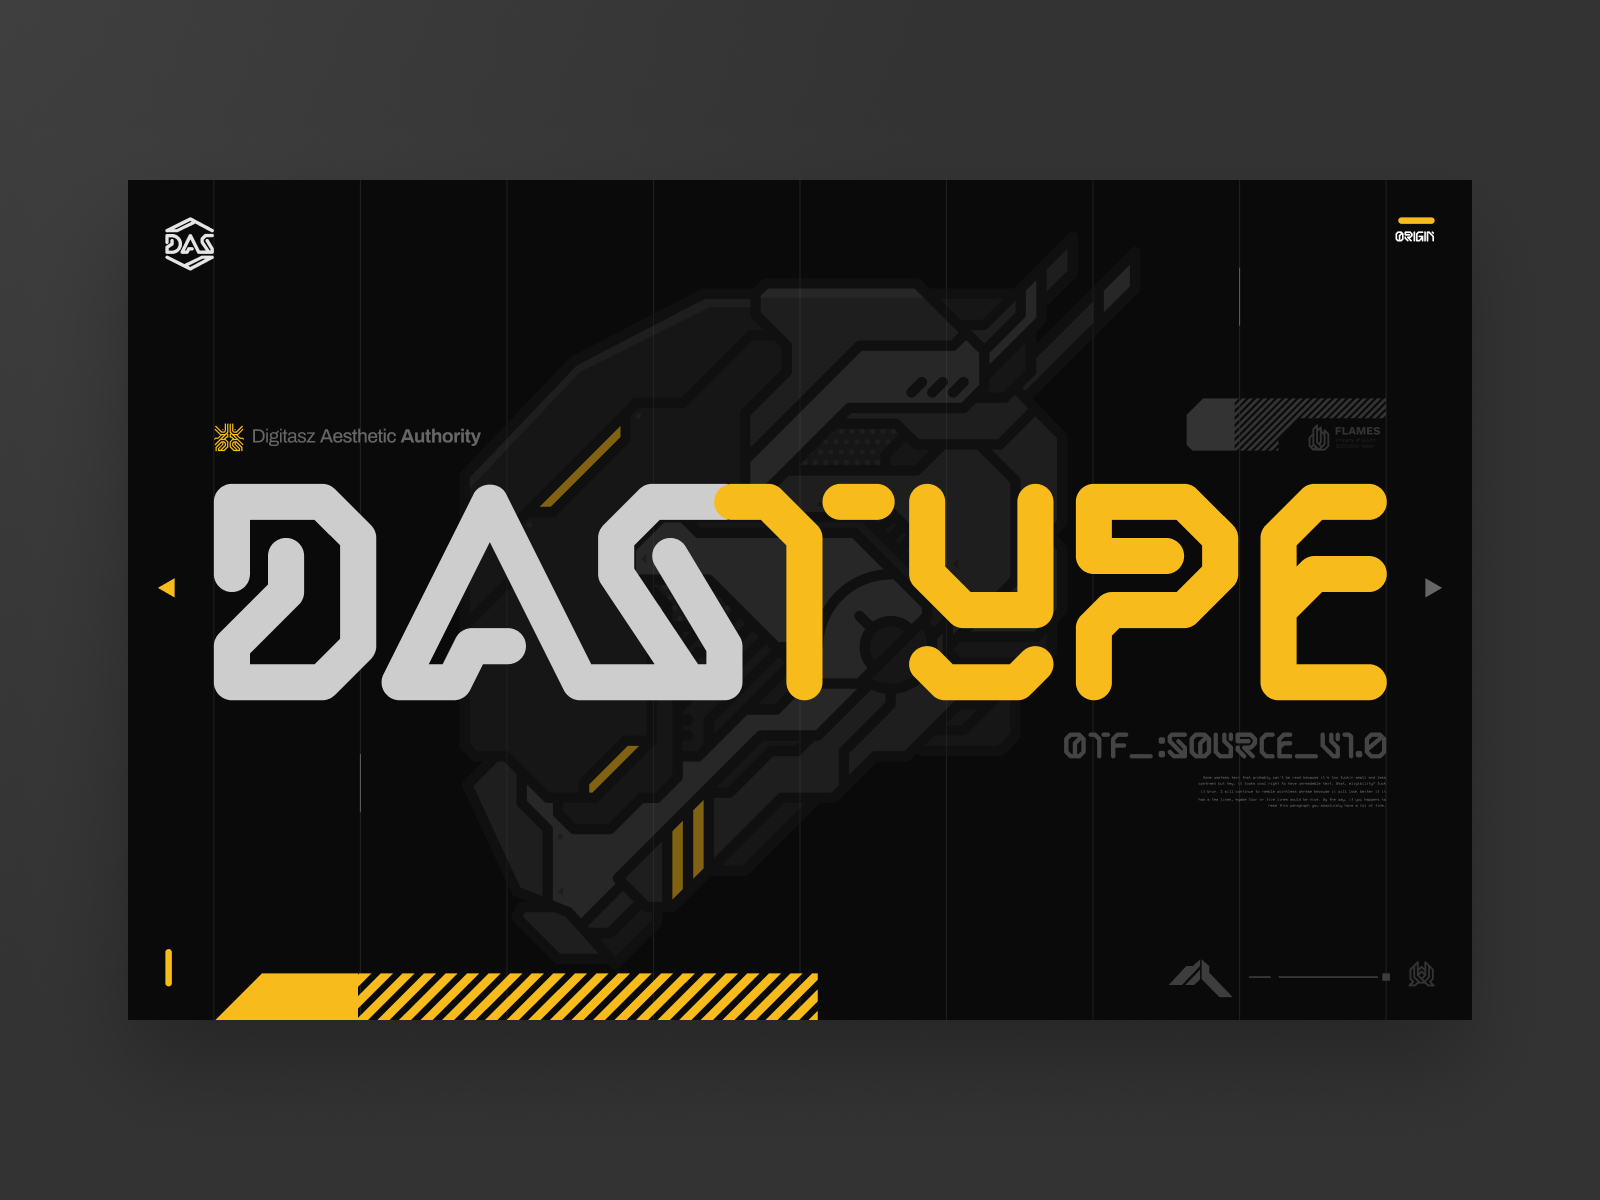 Dastype website